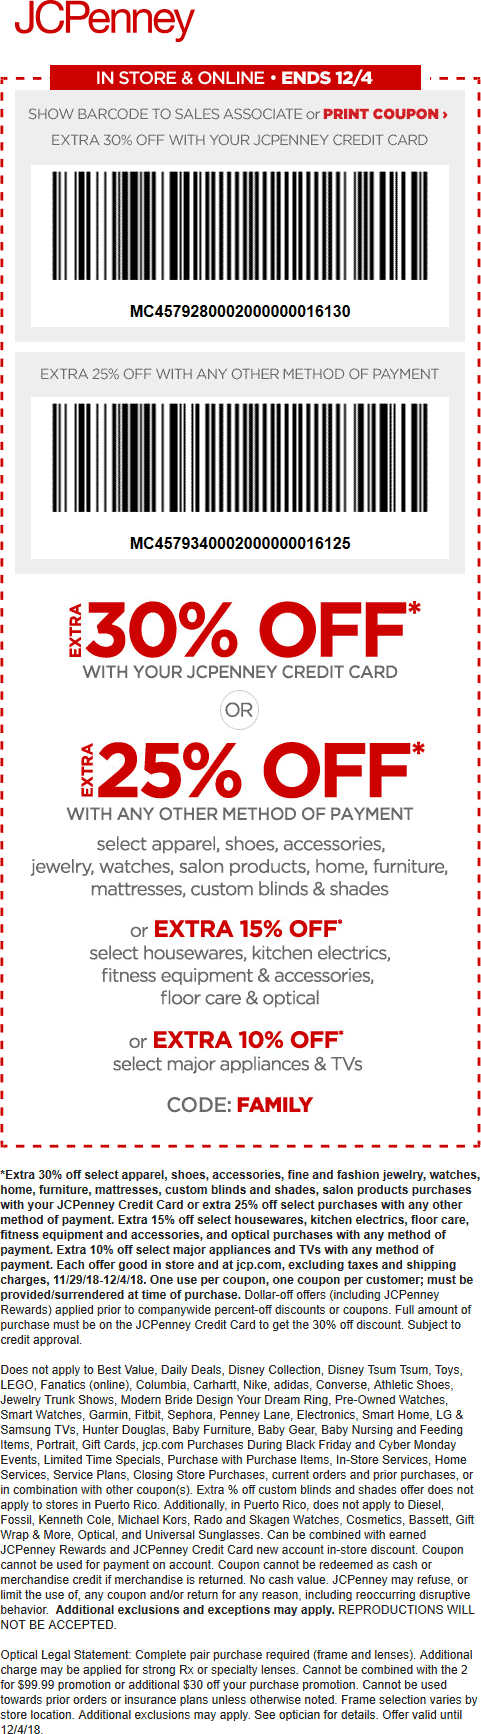 JCPenney.com Promo Coupon 25% off at JCPenney, or online via promo code FAMILY